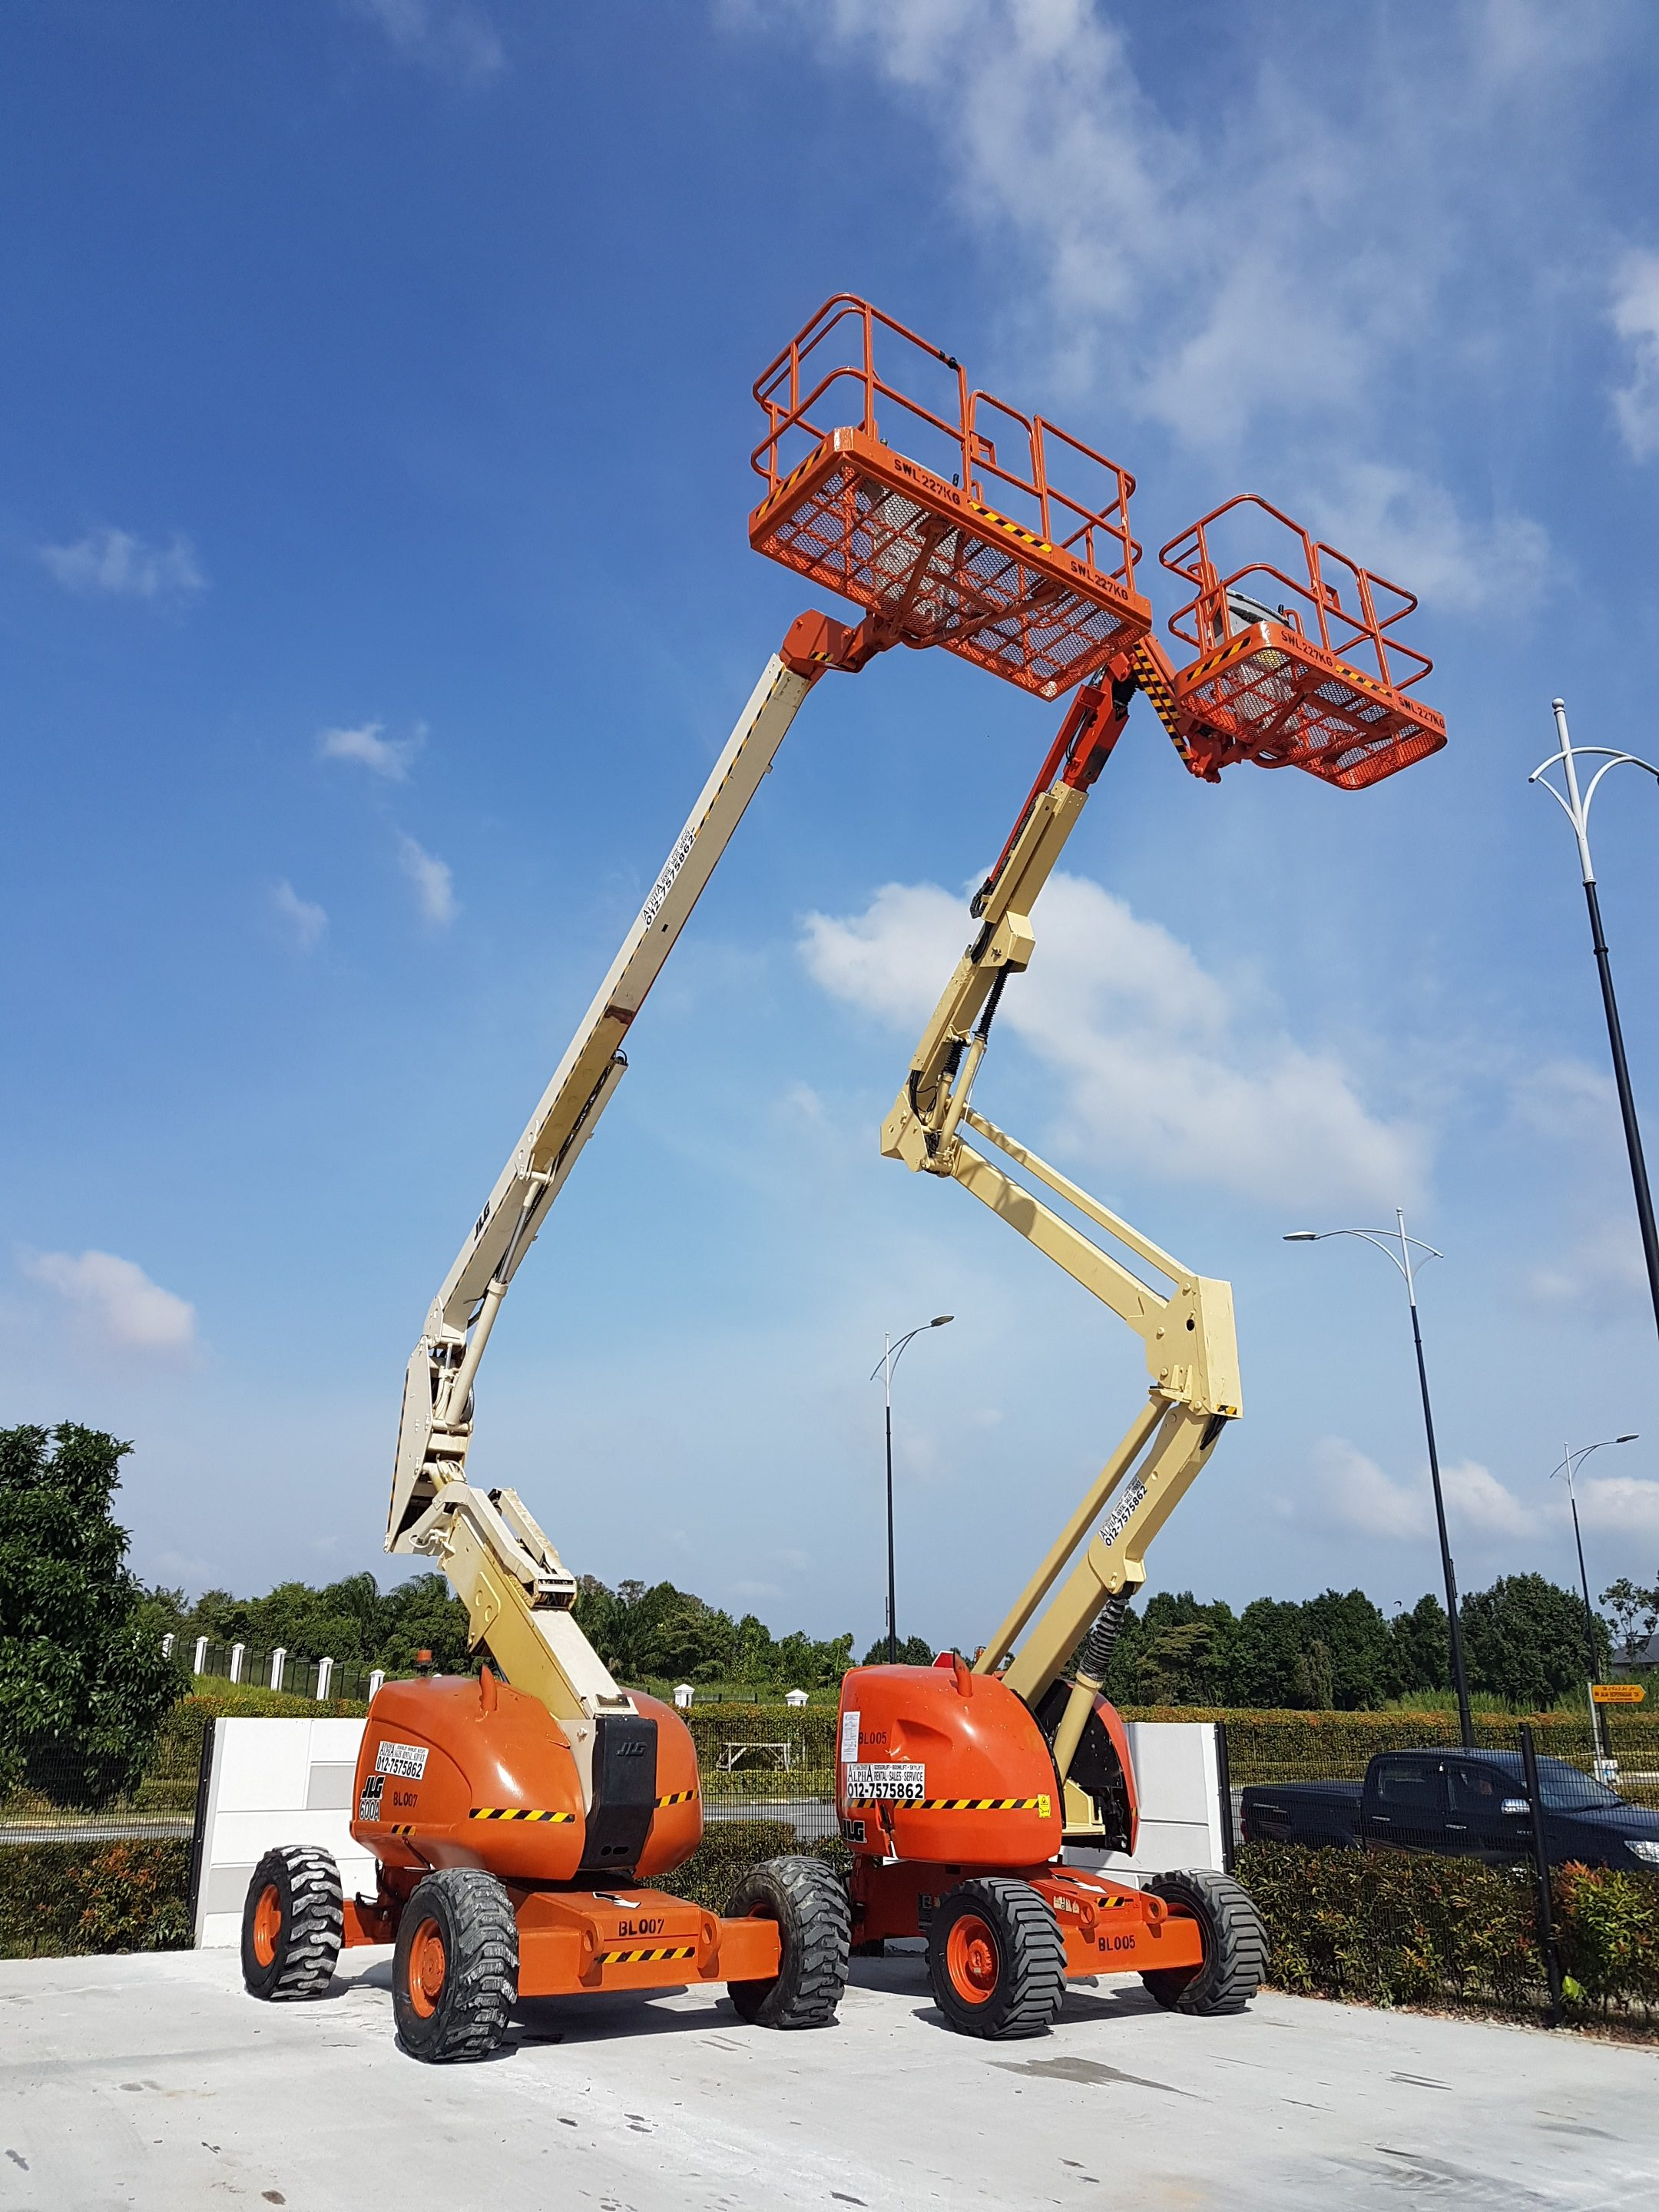 JLG Articulated Boom Lifts